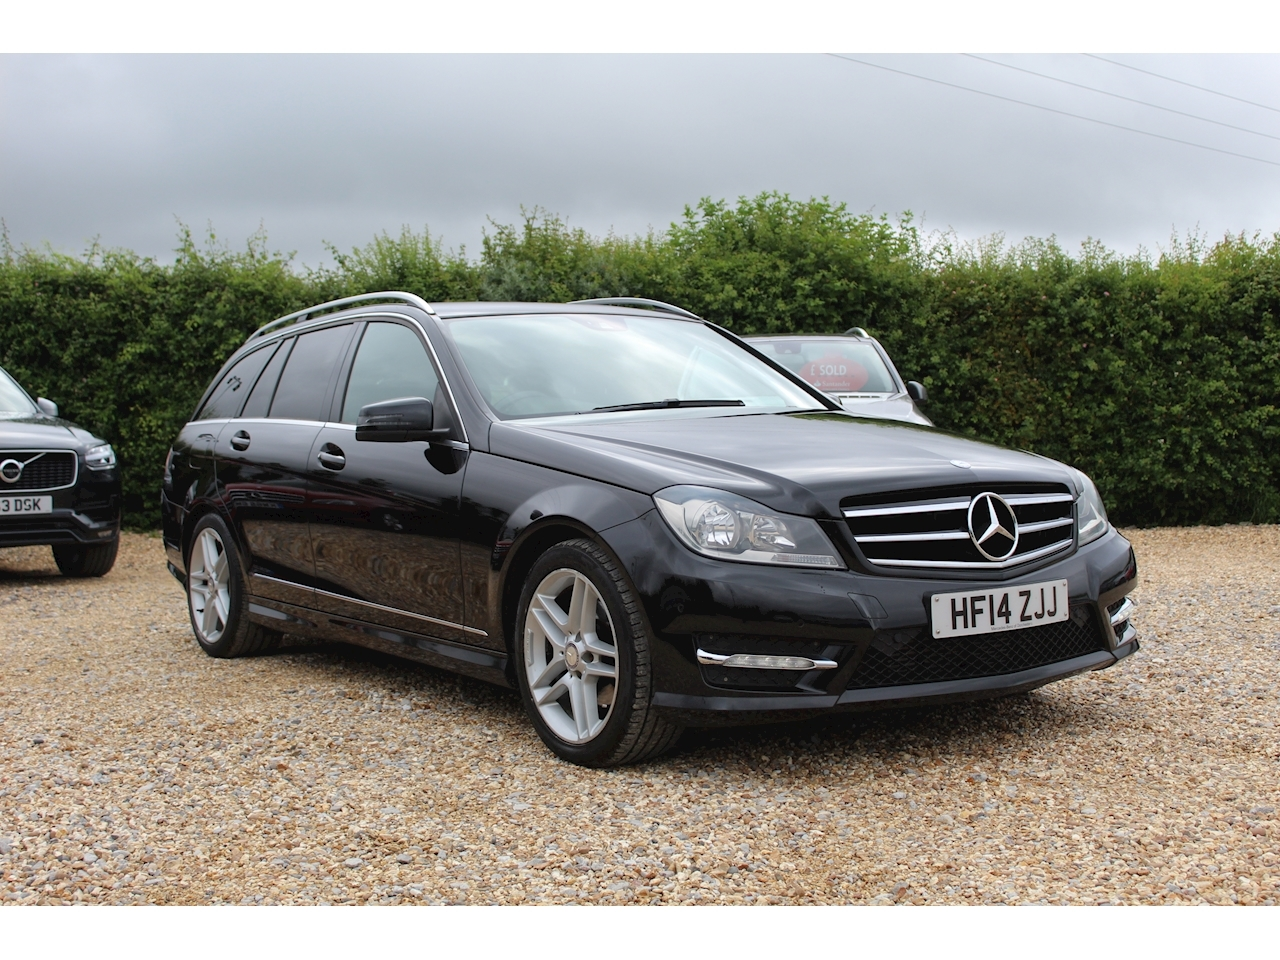 Mercedes-Benz C Class C250 Cdi Amg Sport Edition Premium Estate 2.1 Automatic Diesel